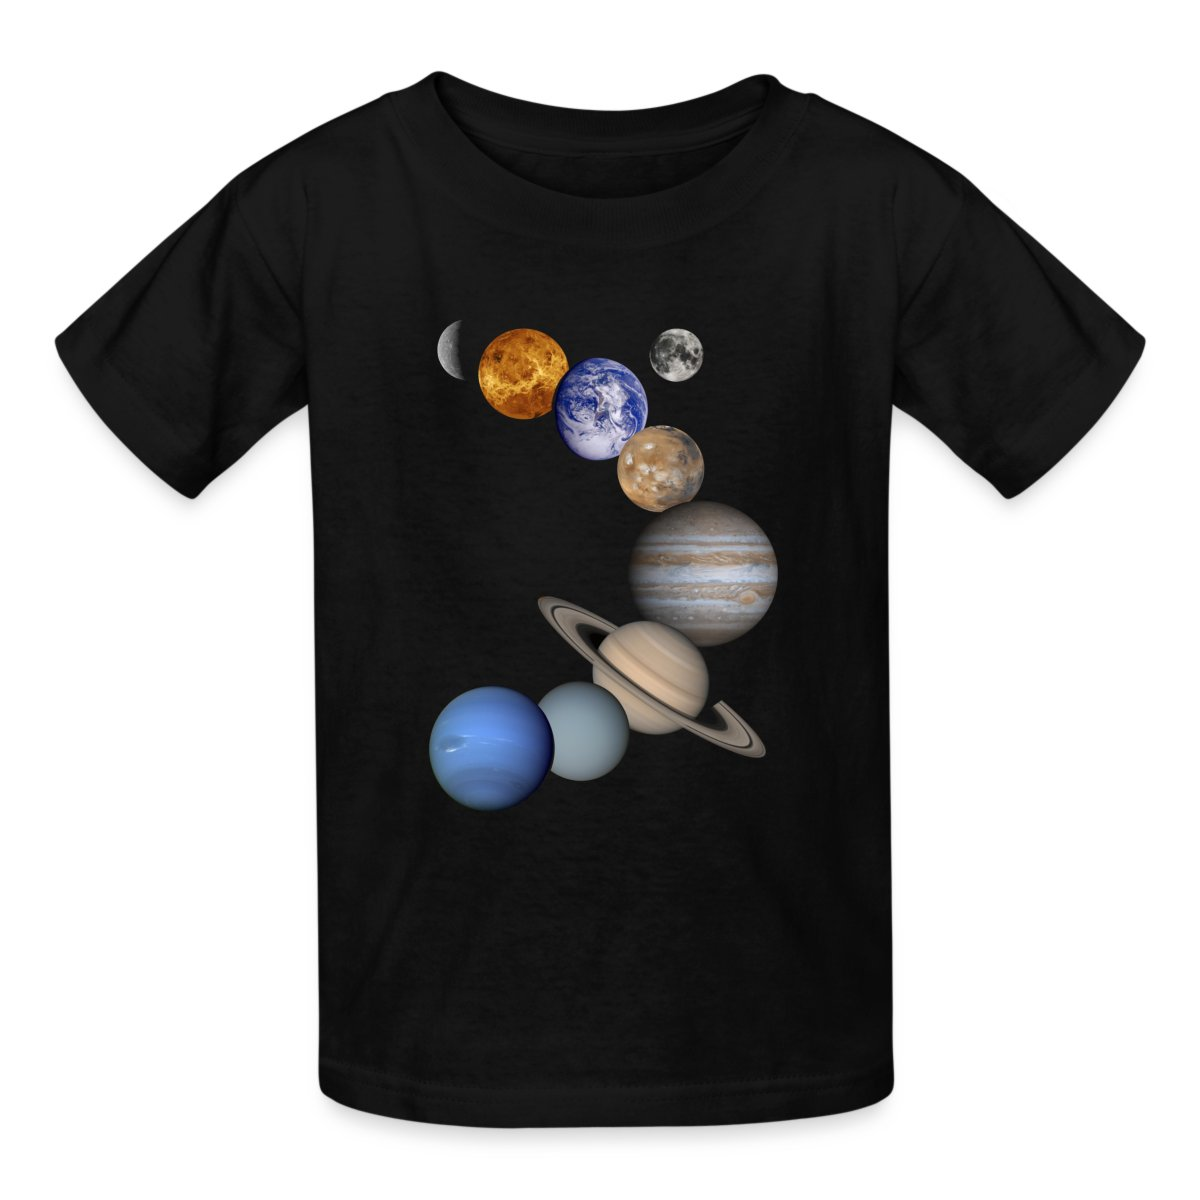 camp solar system t shirts - photo #13